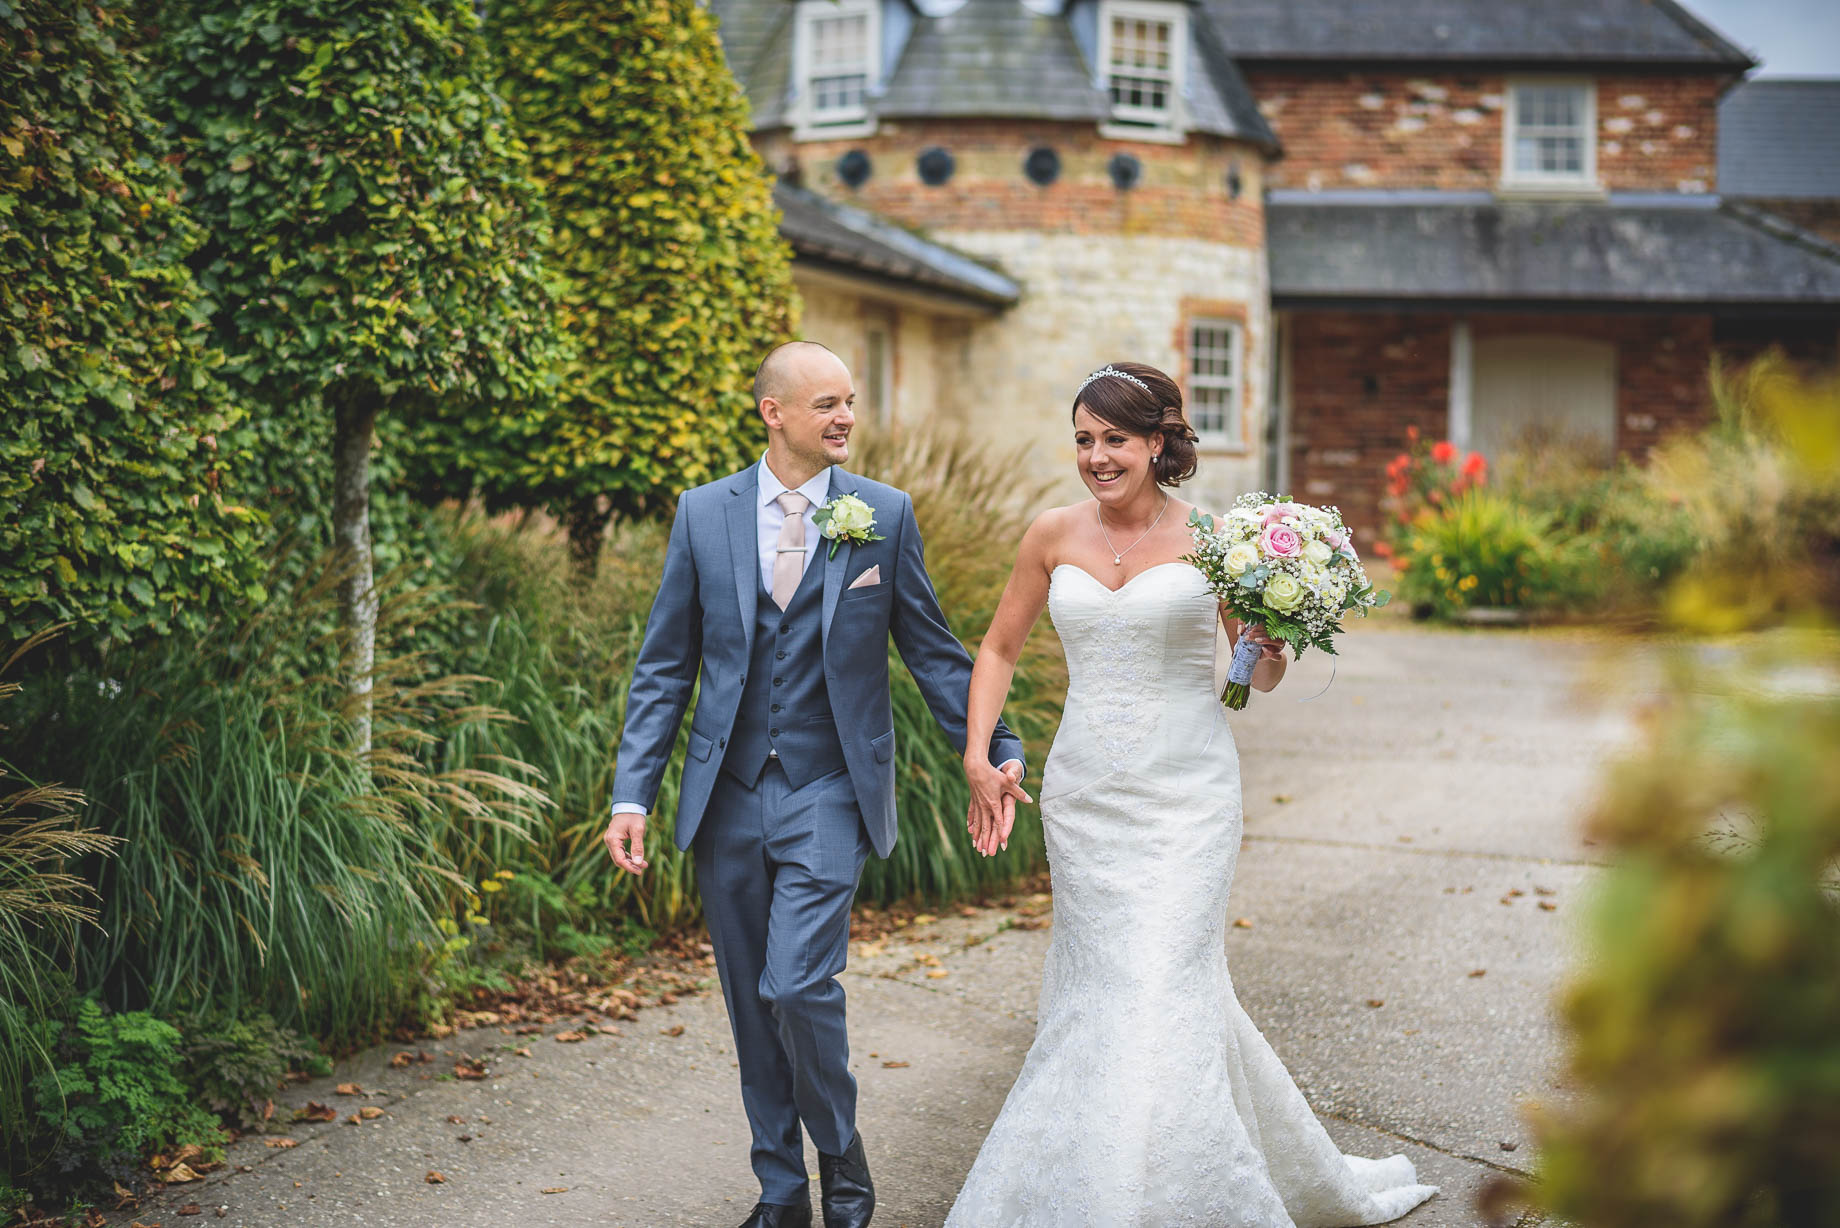 Bury Court Barn wedding photography - Guy Collier Photography - Karen and John (95 of 166)